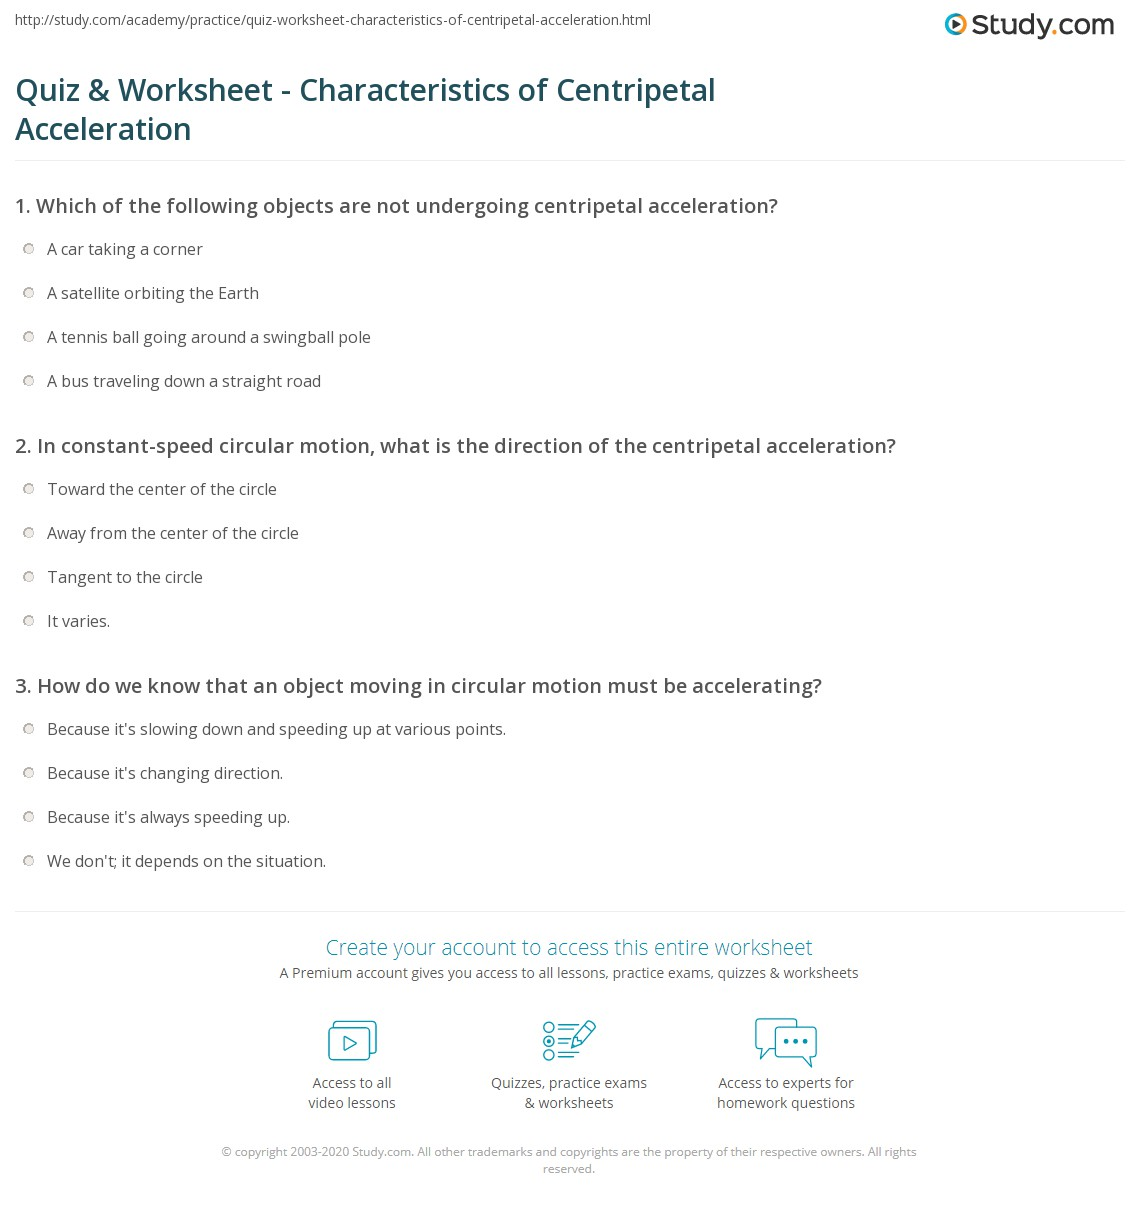 quiz worksheet characteristics of centripetal acceleration. Black Bedroom Furniture Sets. Home Design Ideas